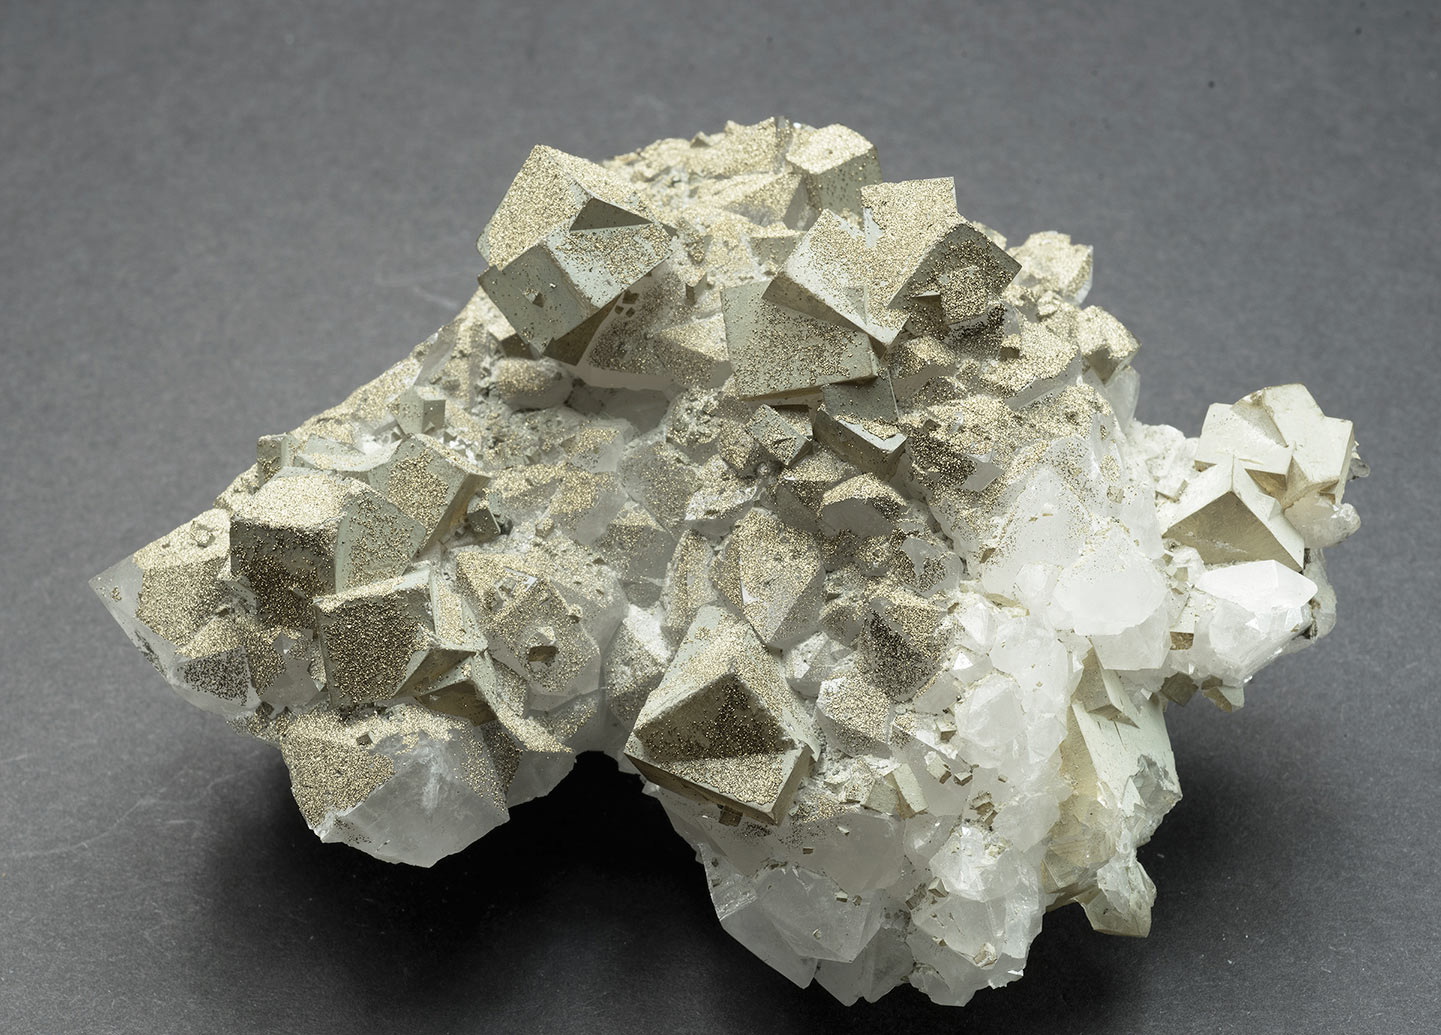 Pyrite & chamosite on fluorite, 'Zinc flats', Cambokeels mine, Eastgate, Weardale. 110x90x45mm